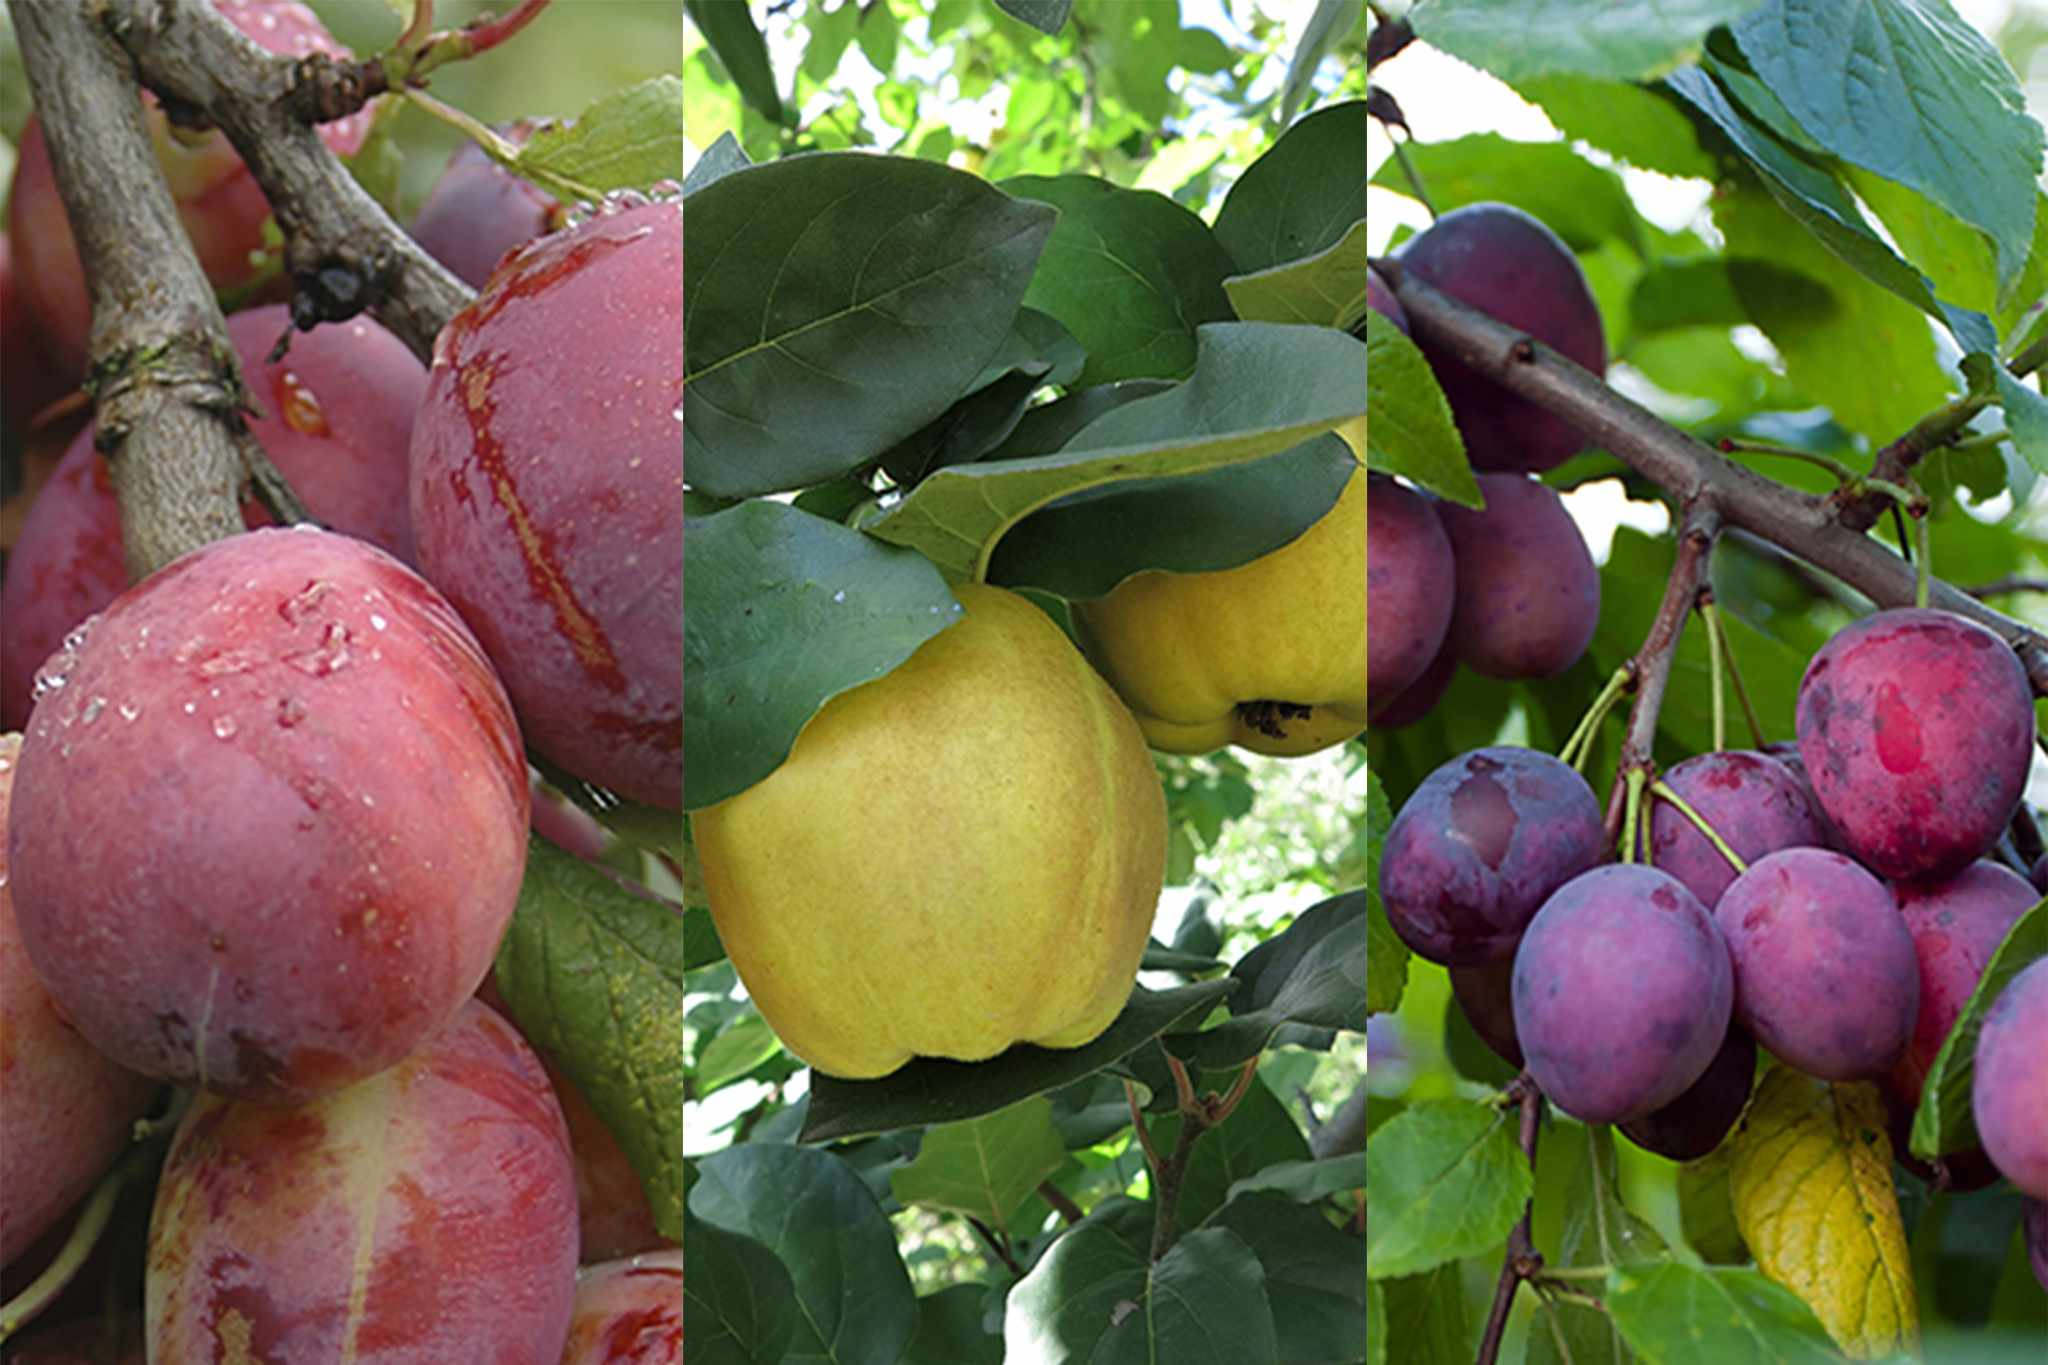 blooming-direct-25-per-cent-off-fruit-trees-2048-1365